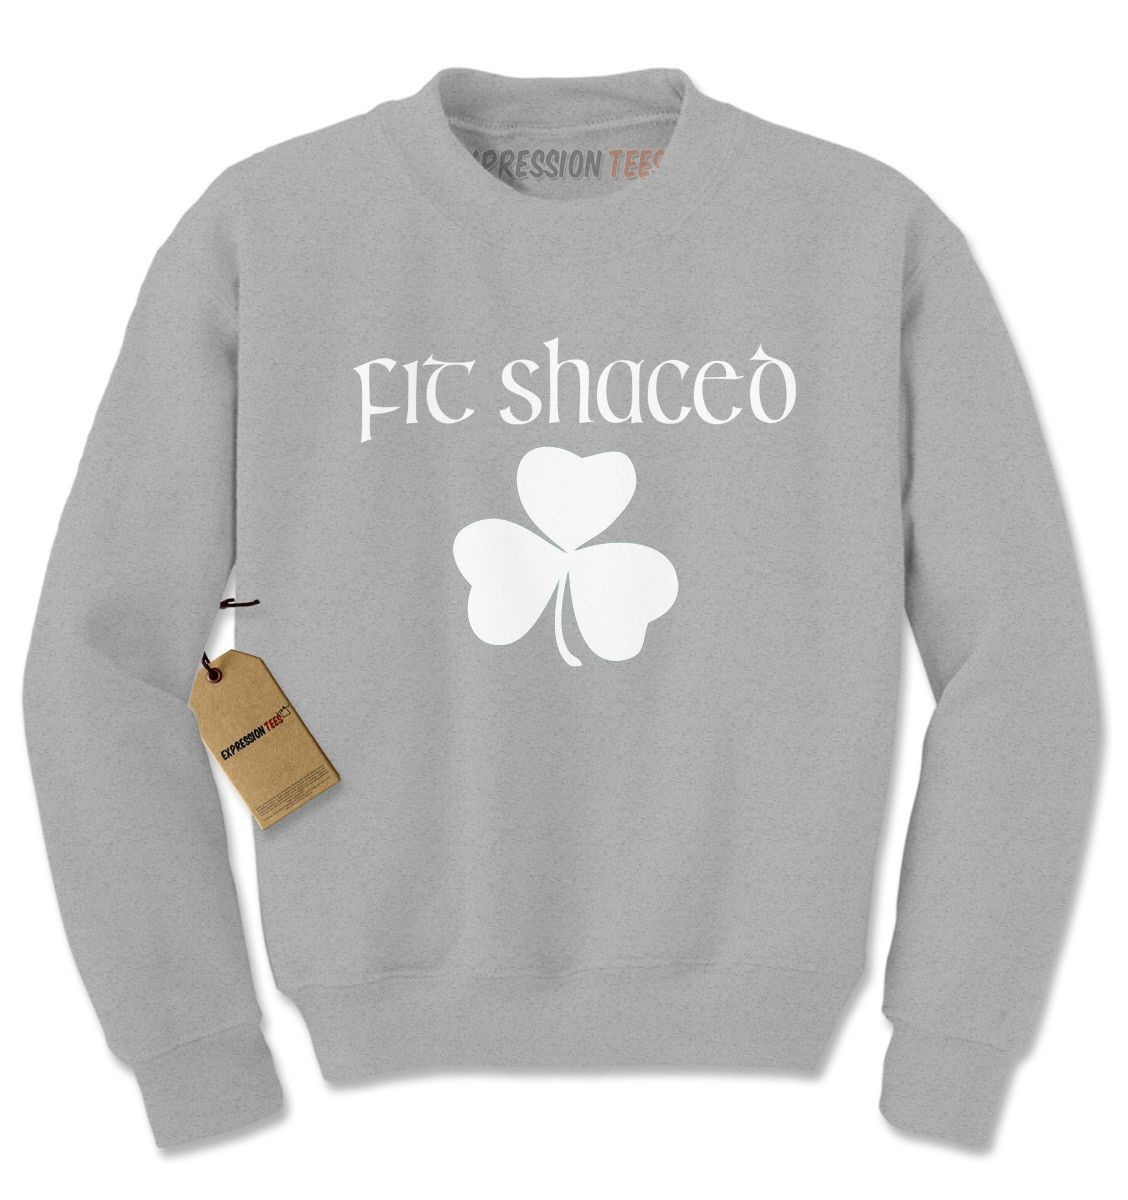 Outlet The Cheapest Outlet Cheapest Price Crew neck pullover DAY.LIKE grey Day Like Newest Cheap Online 5T96wB4iE